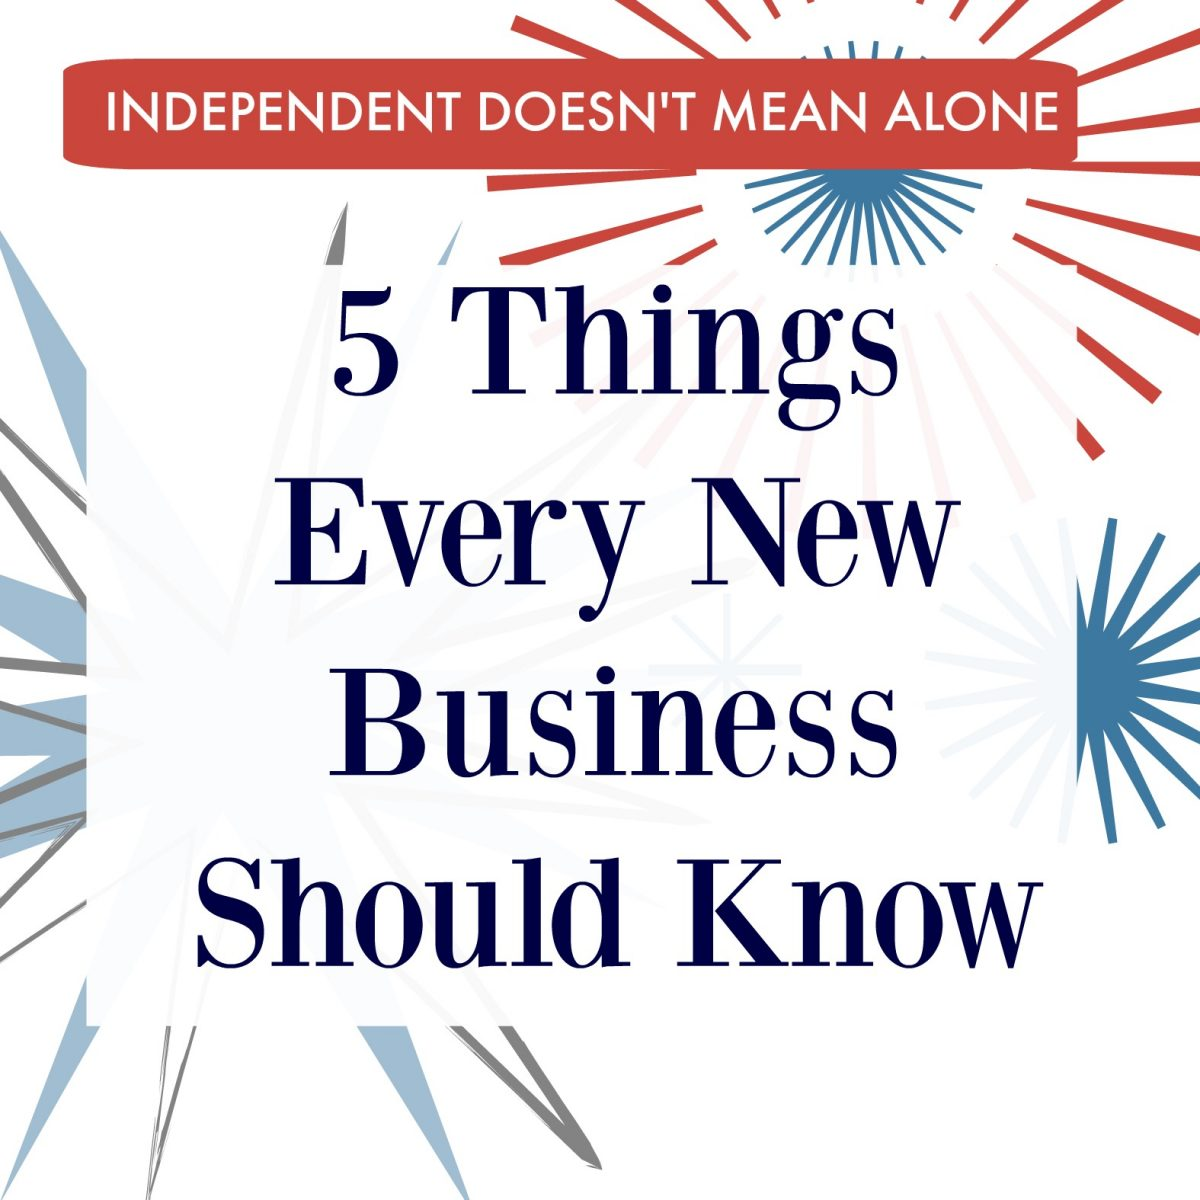 5 Things Every New Business Should Know